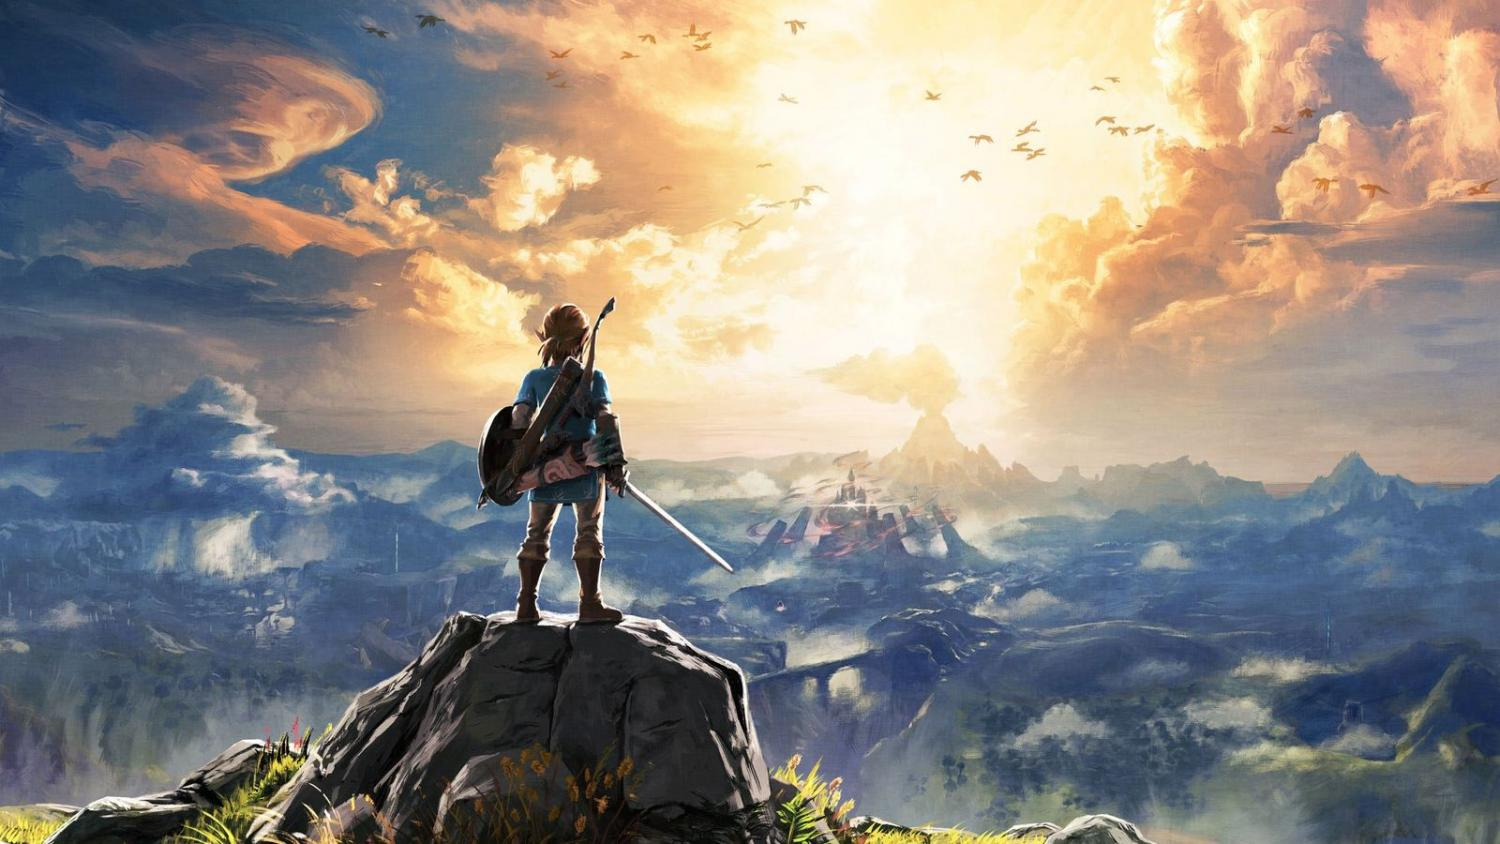 Cover art for The Legend of Zelda: Breath of the Wild